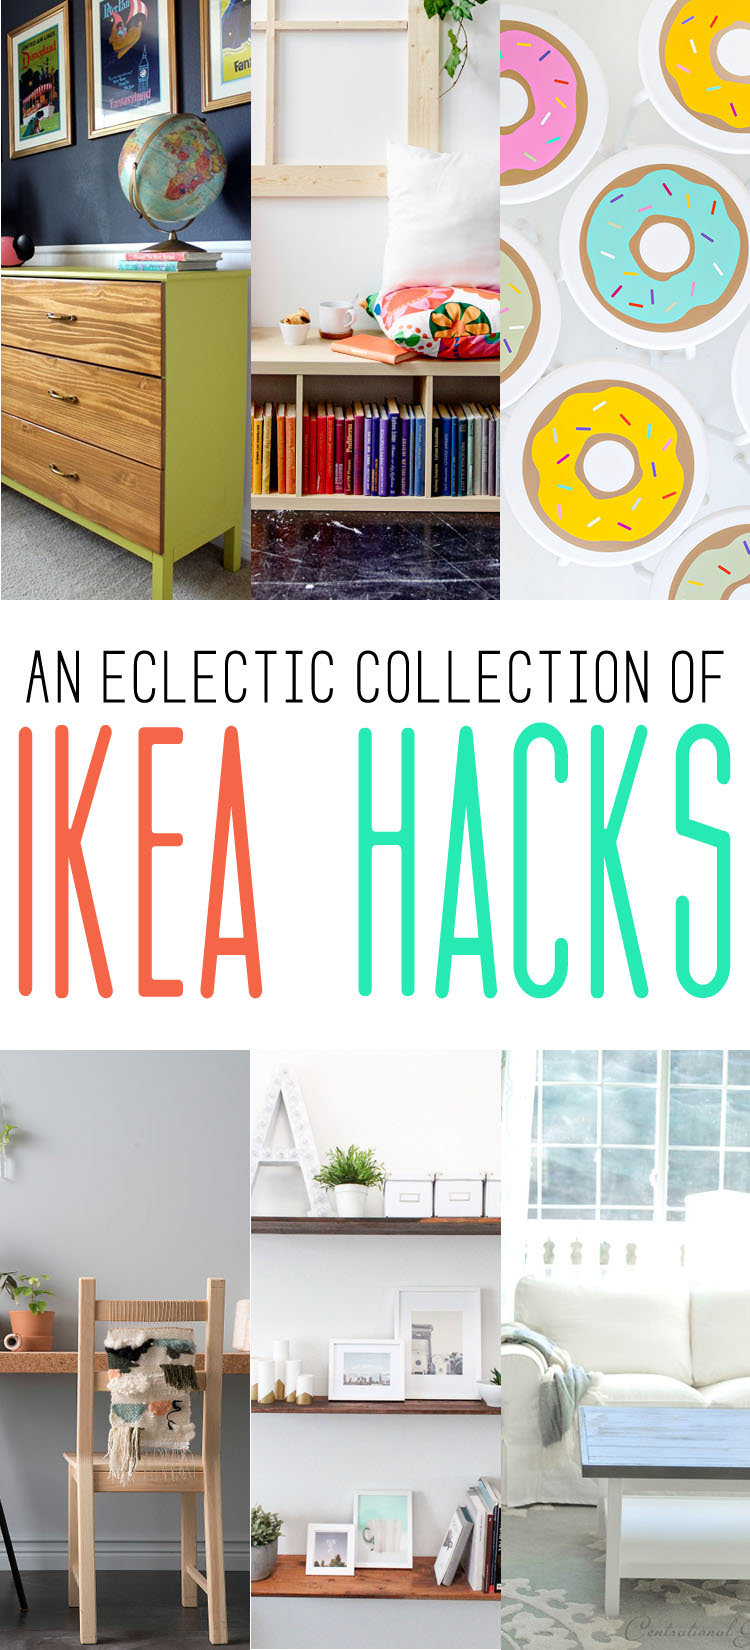 EclecticIKEA-TOWER-0001